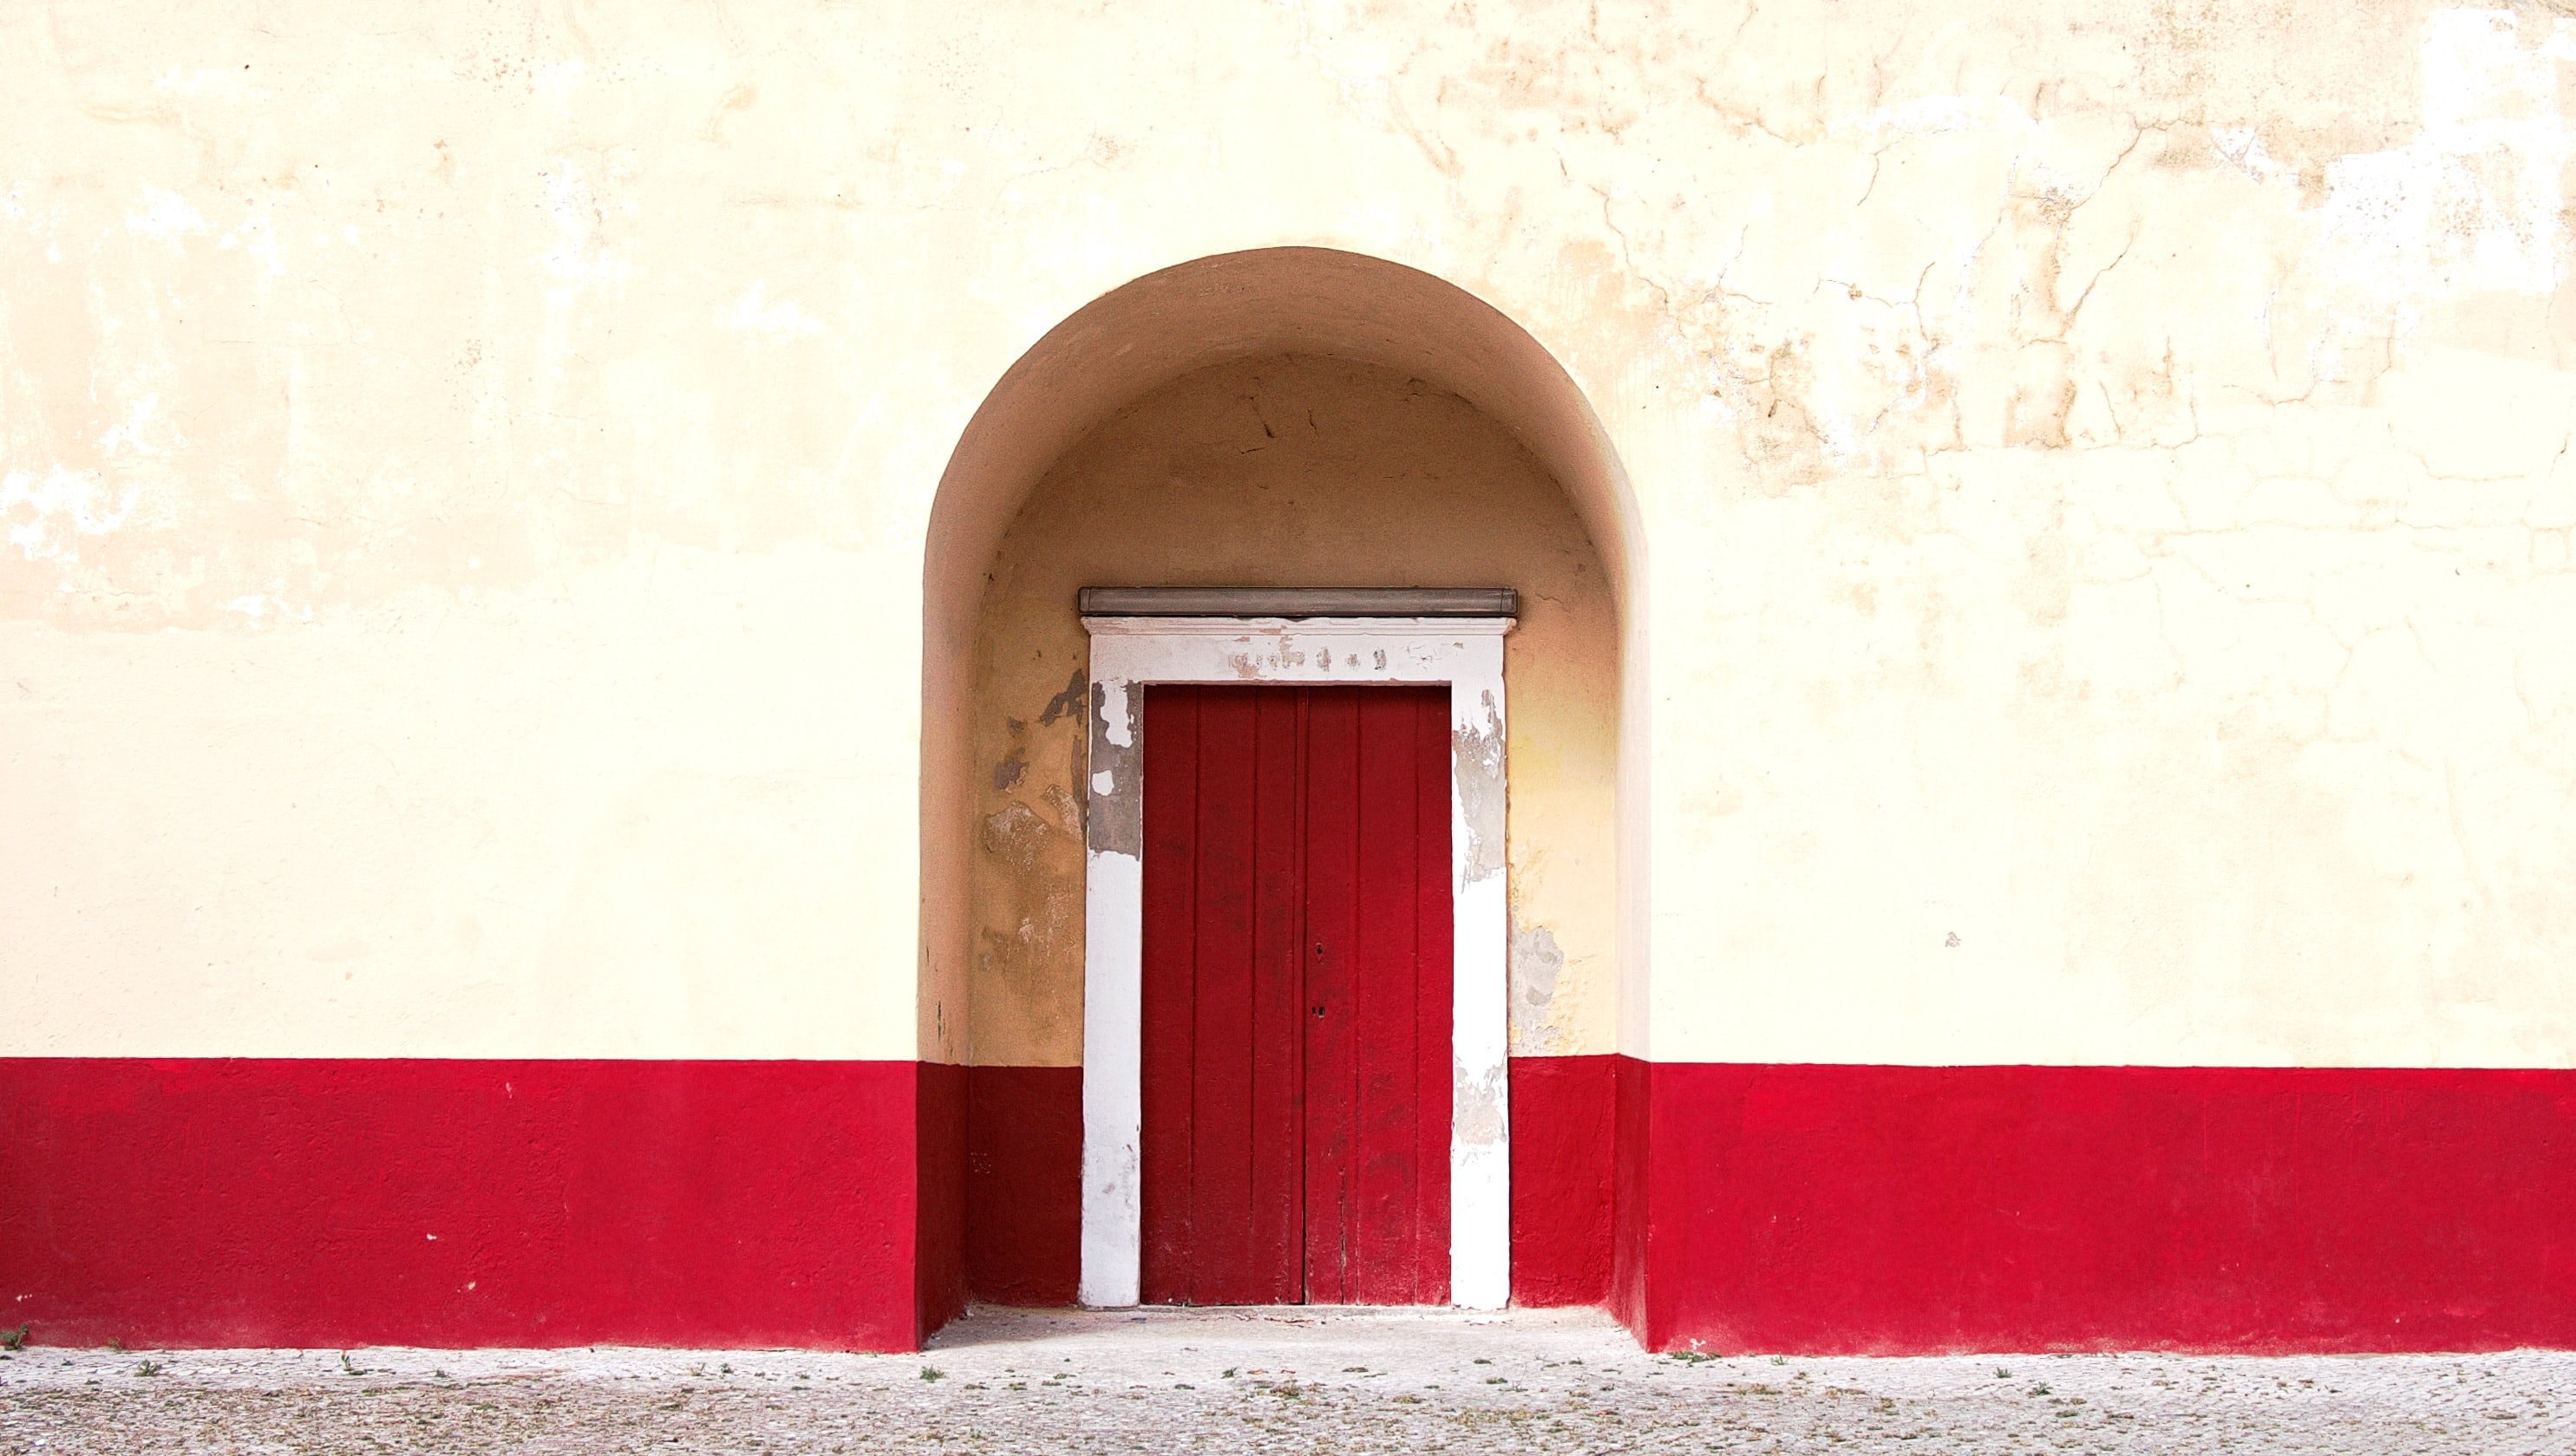 White and red arch door way with a stone walkway outside the door